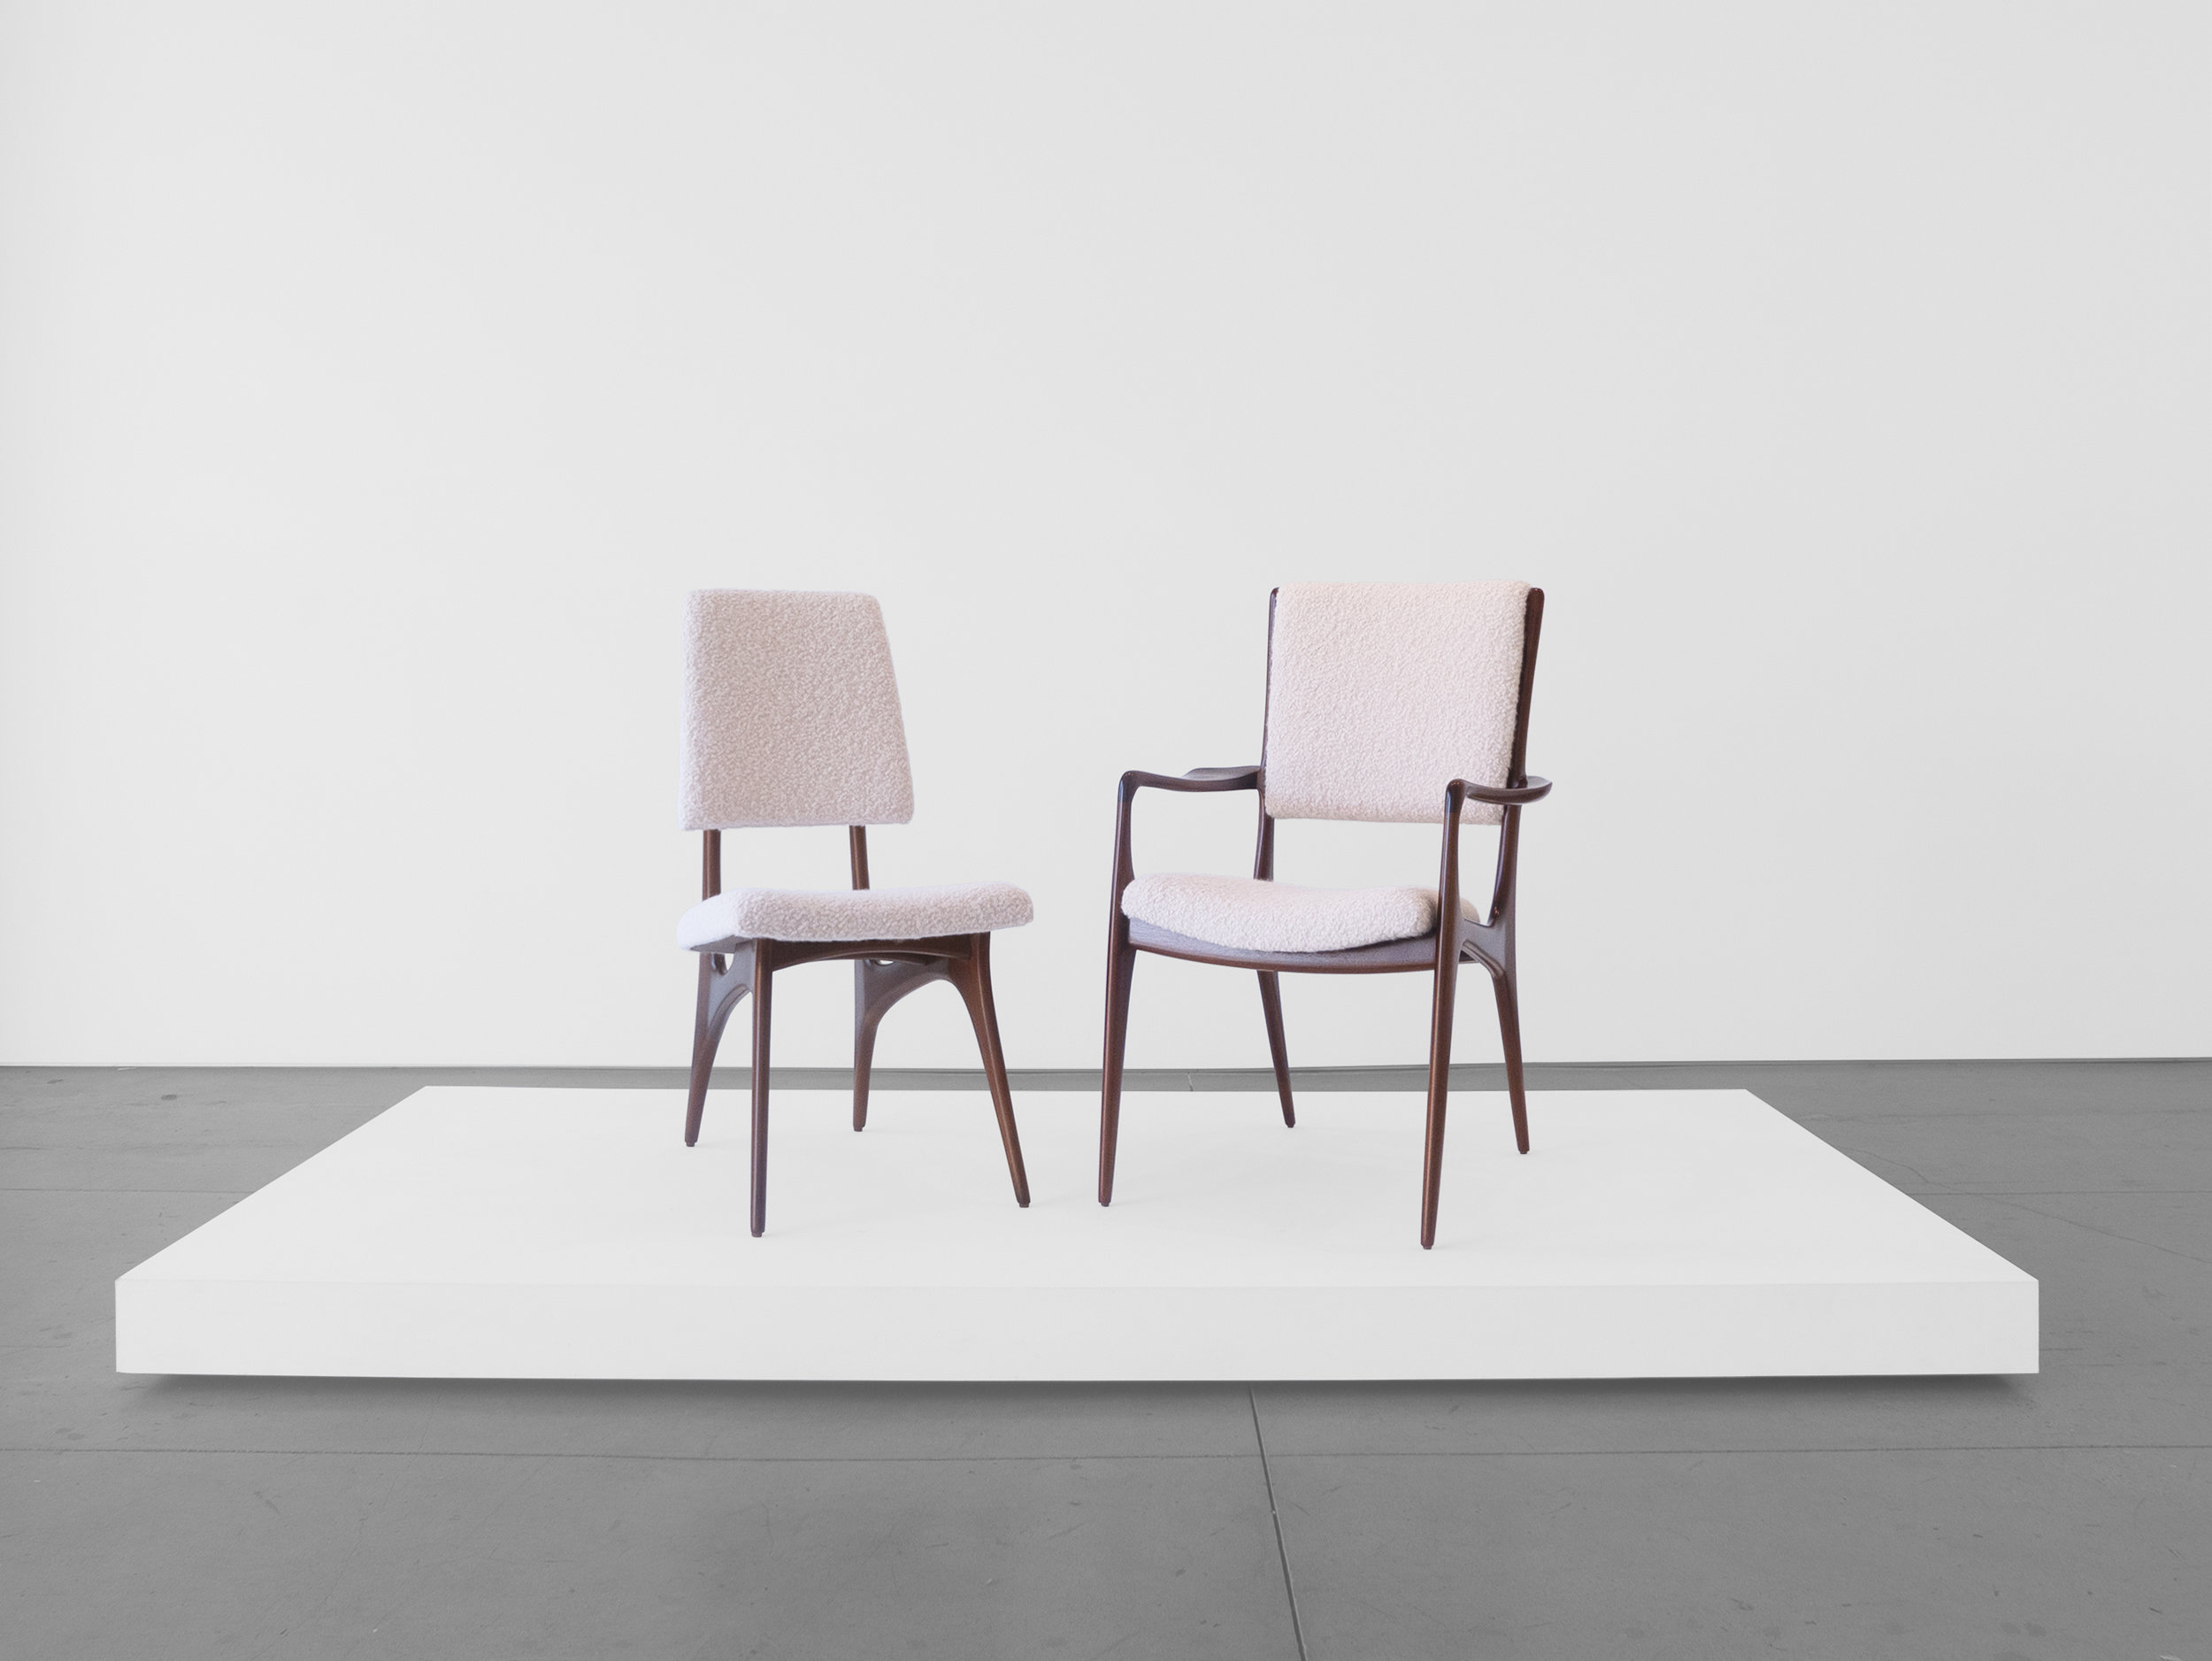 Vladimir Kagan Designed for Dreyfuss, Dining Chairs, c. 1950-1959, Walnut, Upholstery, 36.5 H x 24 W x 25 D inches_1.jpg